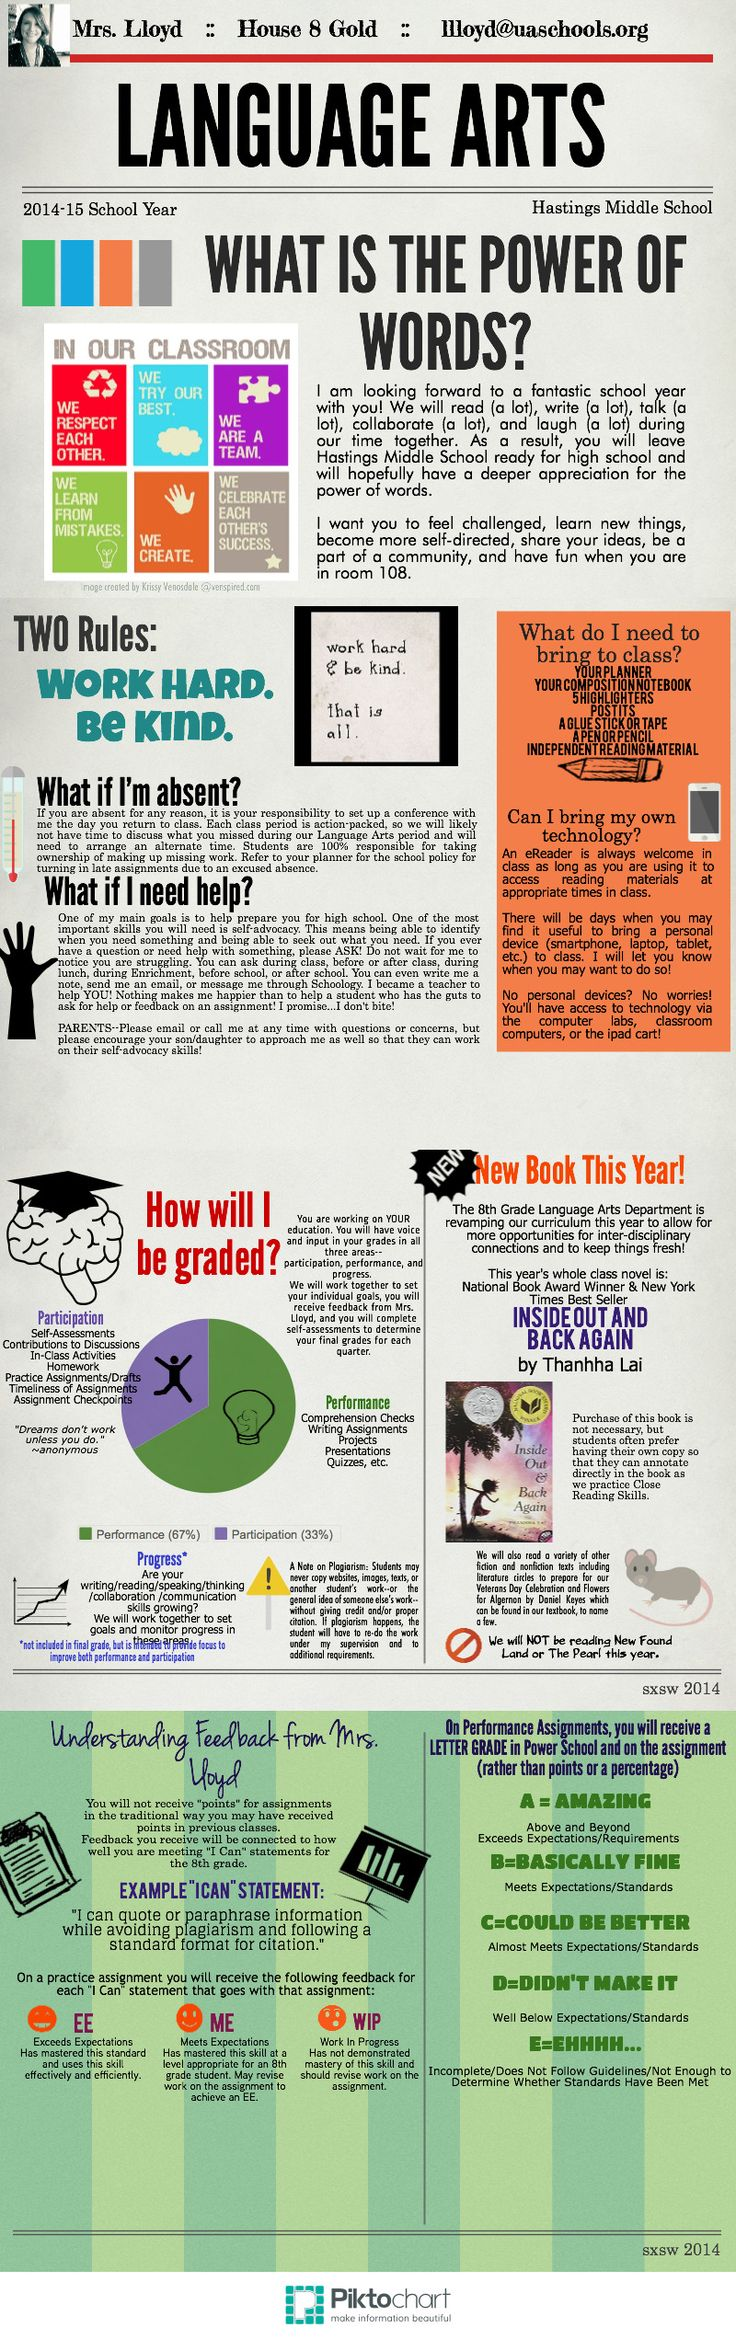 2014-15 Syllabus (created at piktochart.com)